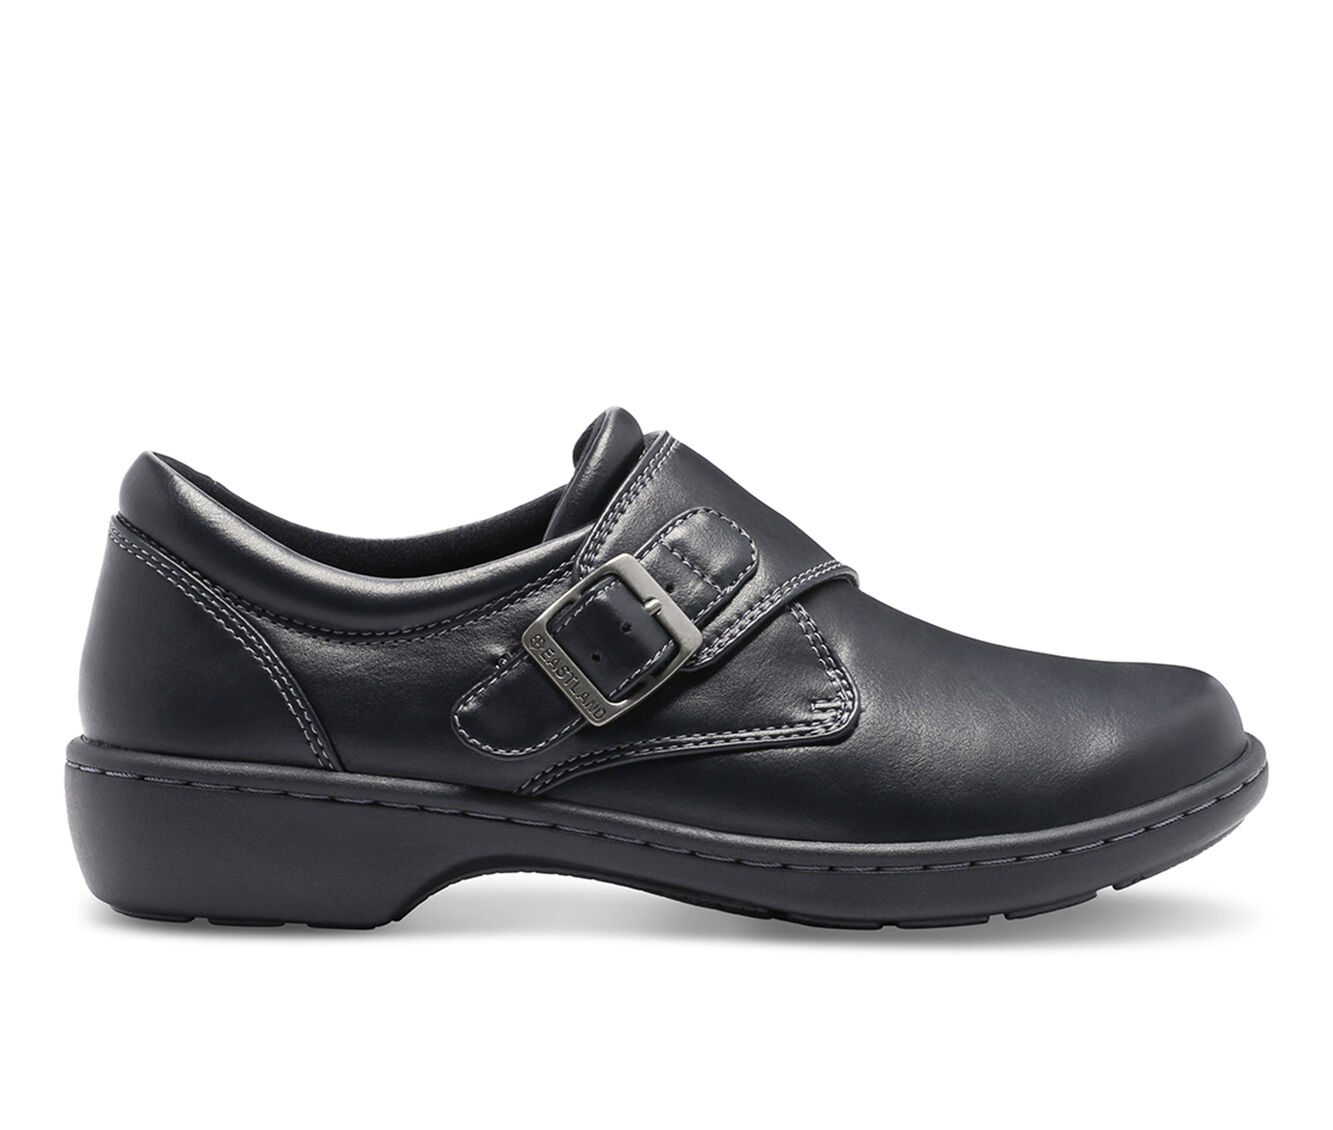 a huge range of Women's Eastland Sherri Black